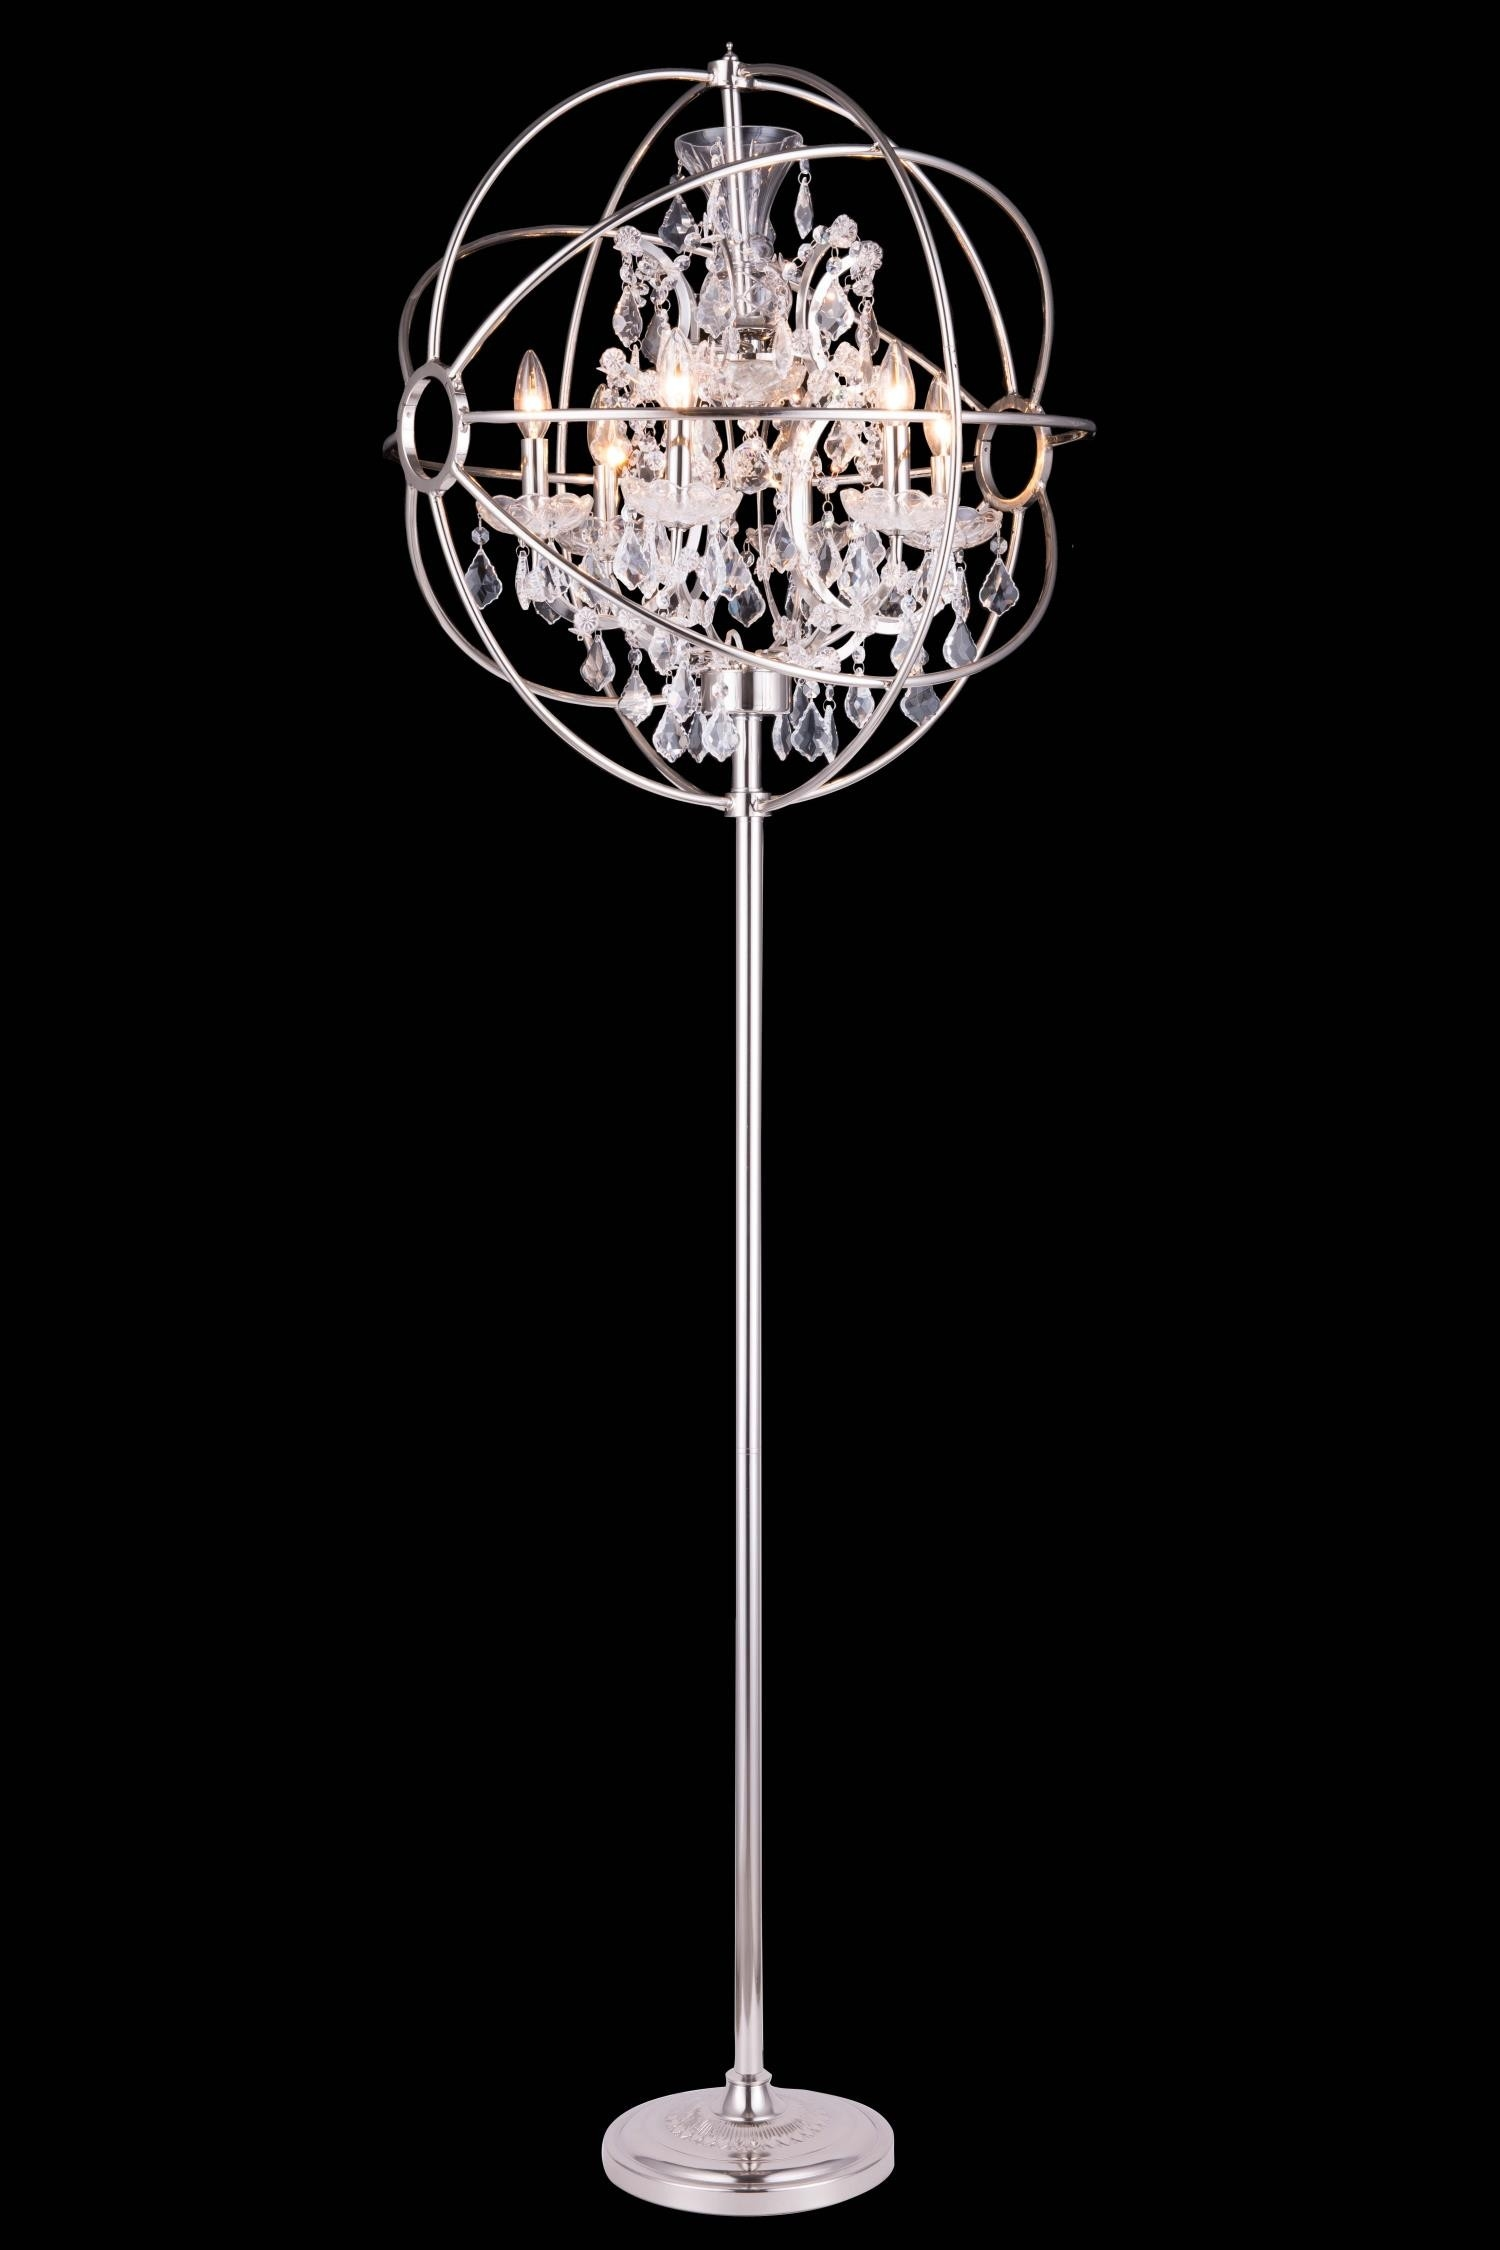 Lights Polished Chrome Floor Lamp Chandelier Floor Lamp In Standing Chandeliers (View 8 of 25)